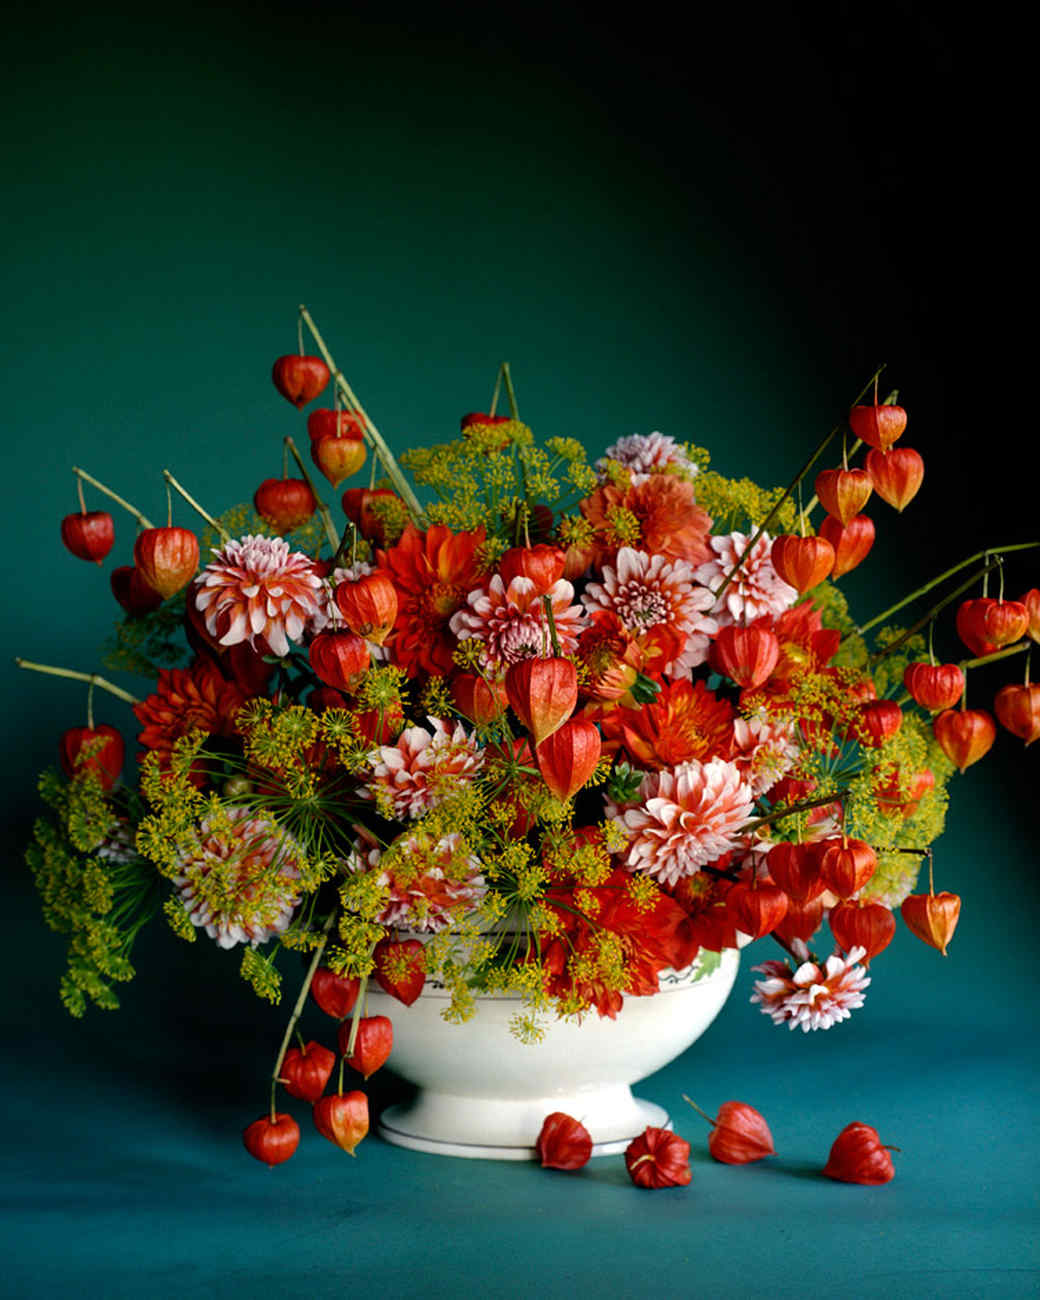 Pics Of Flower Arrangements fall flower arrangements | martha stewart